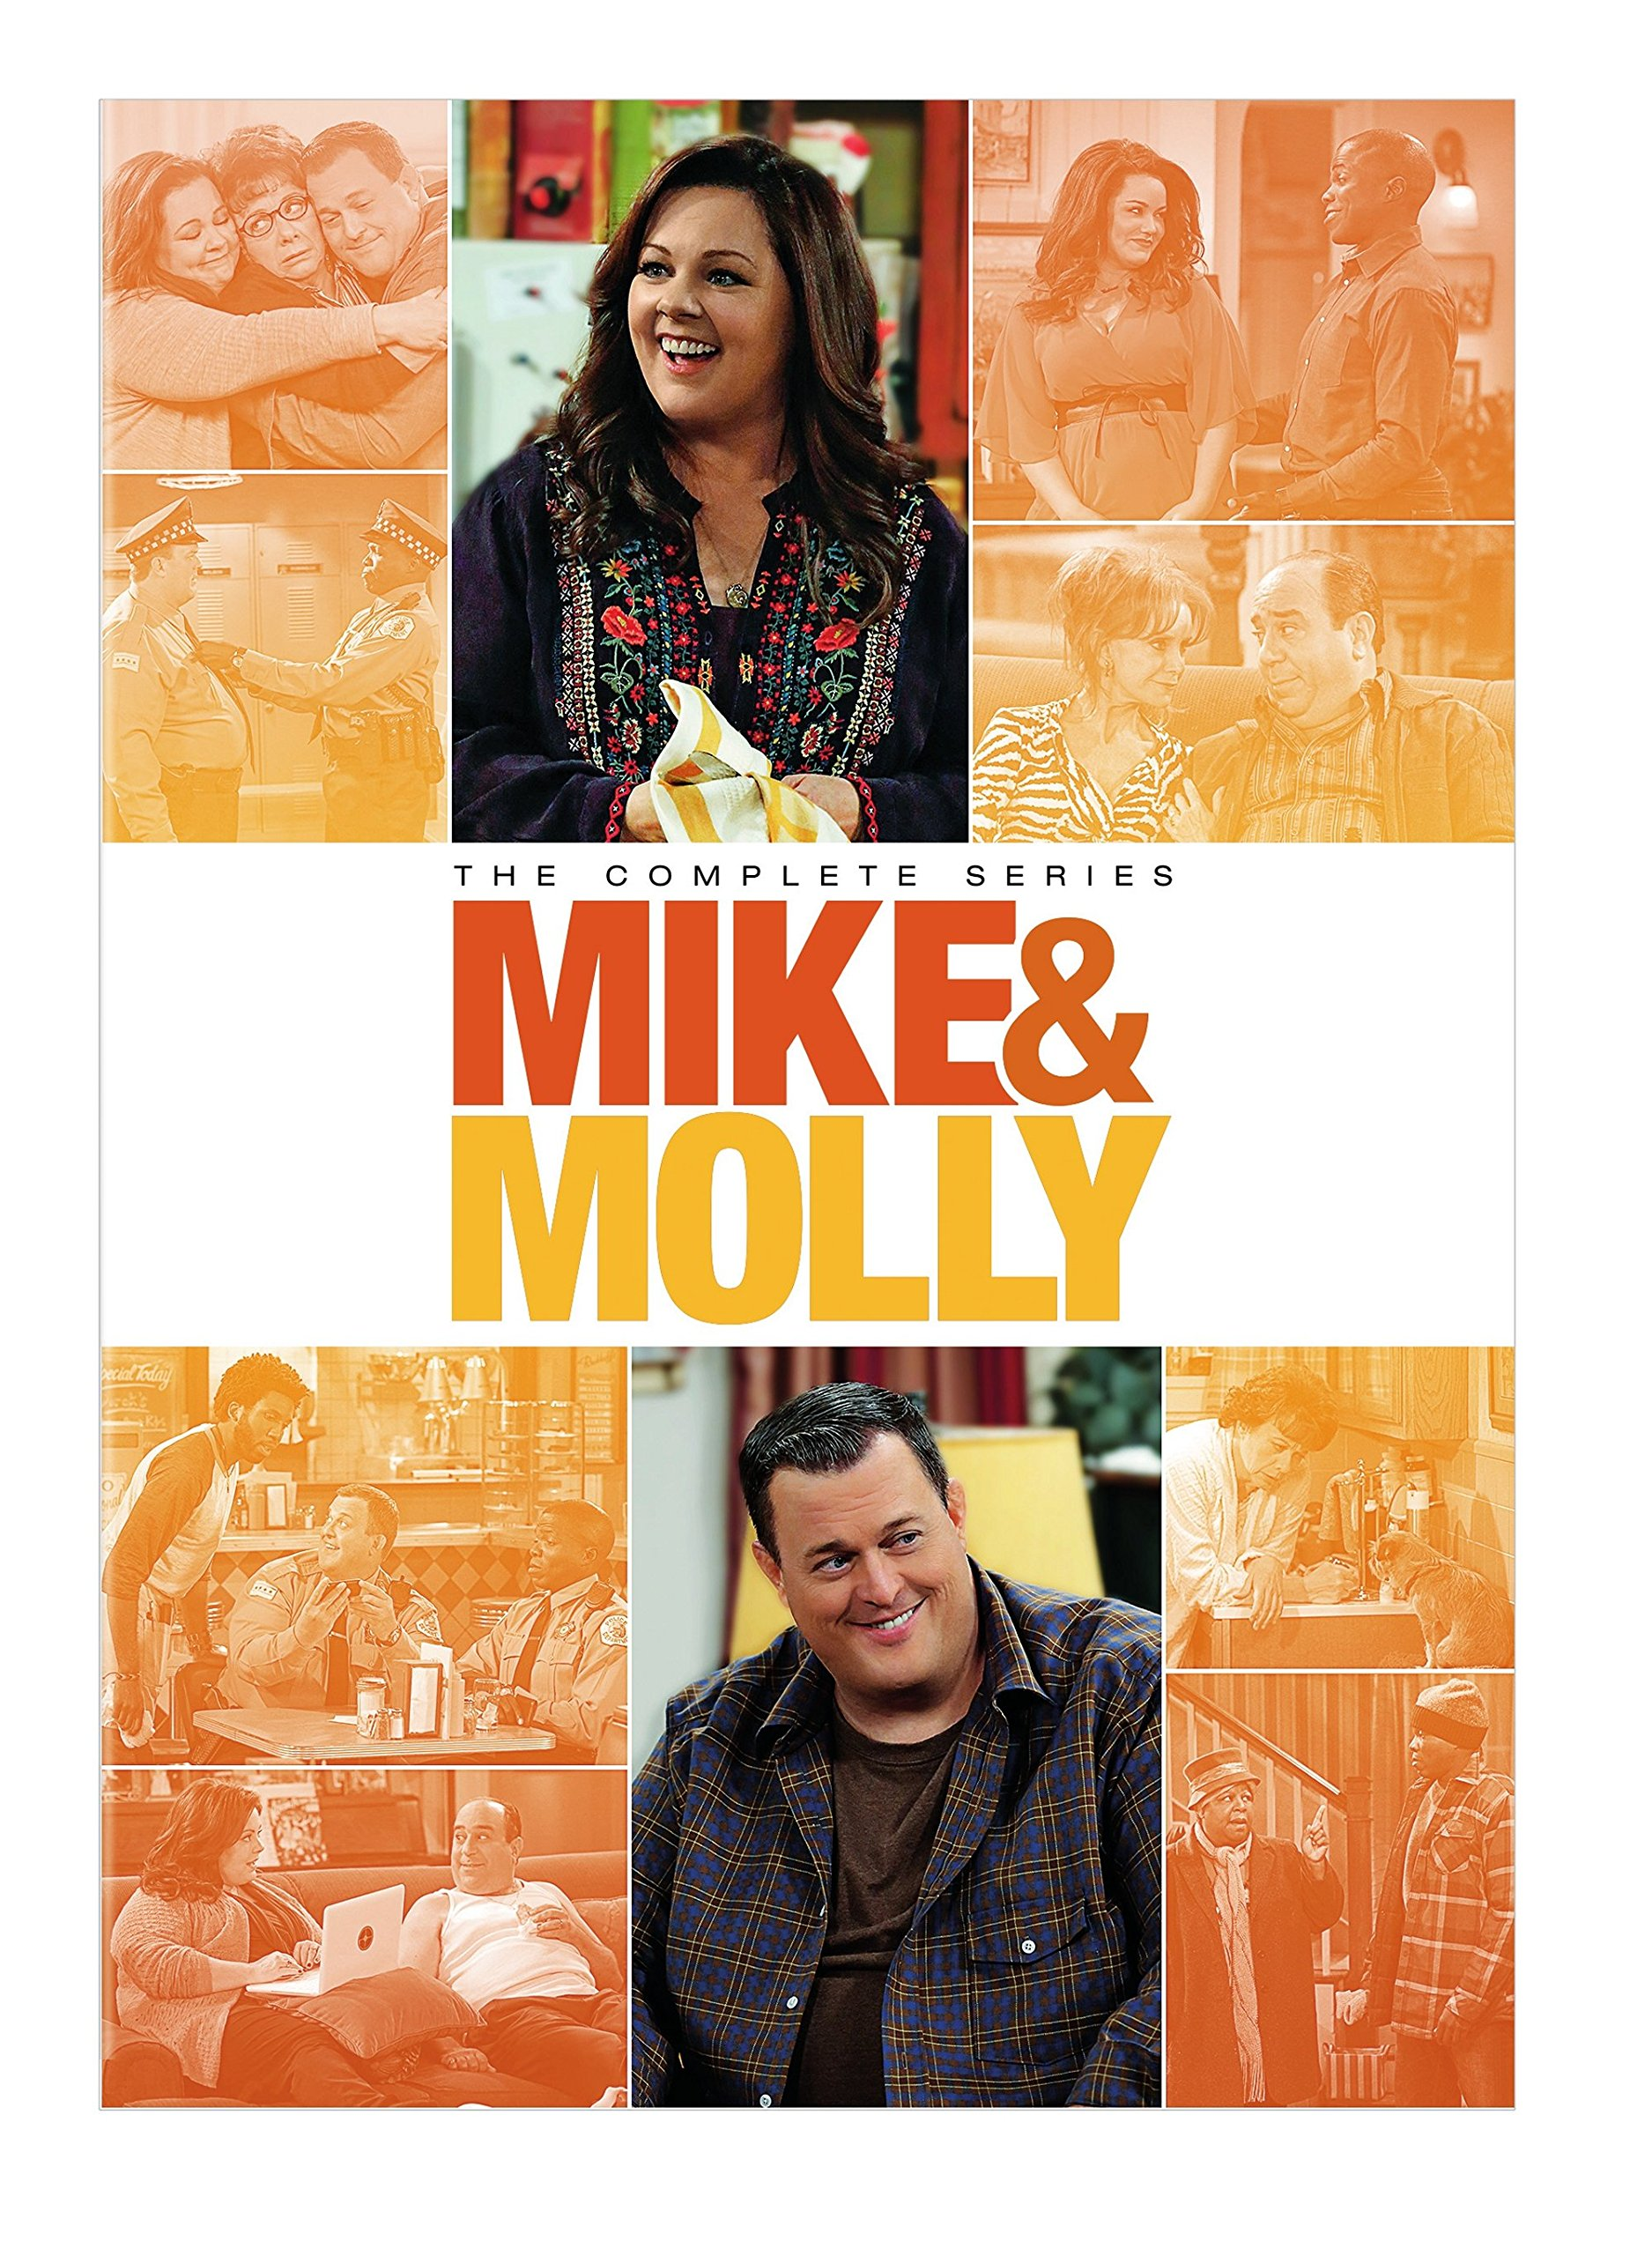 Mike & Molly: The complete series - Season 1- 6 by WarnerBrothers